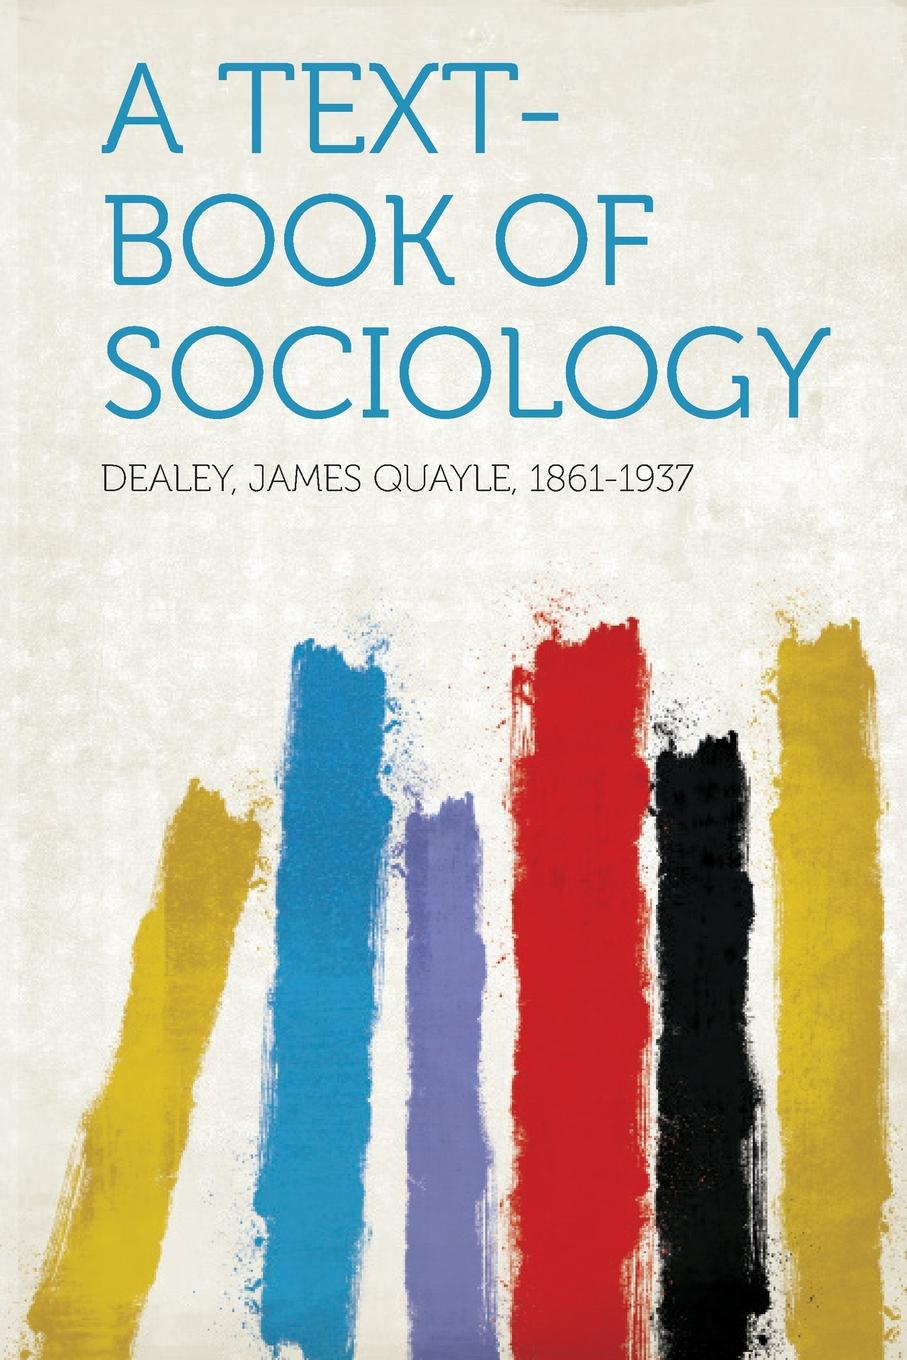 Dealey James Quayle 1861-1937 A Text-Book of Sociology